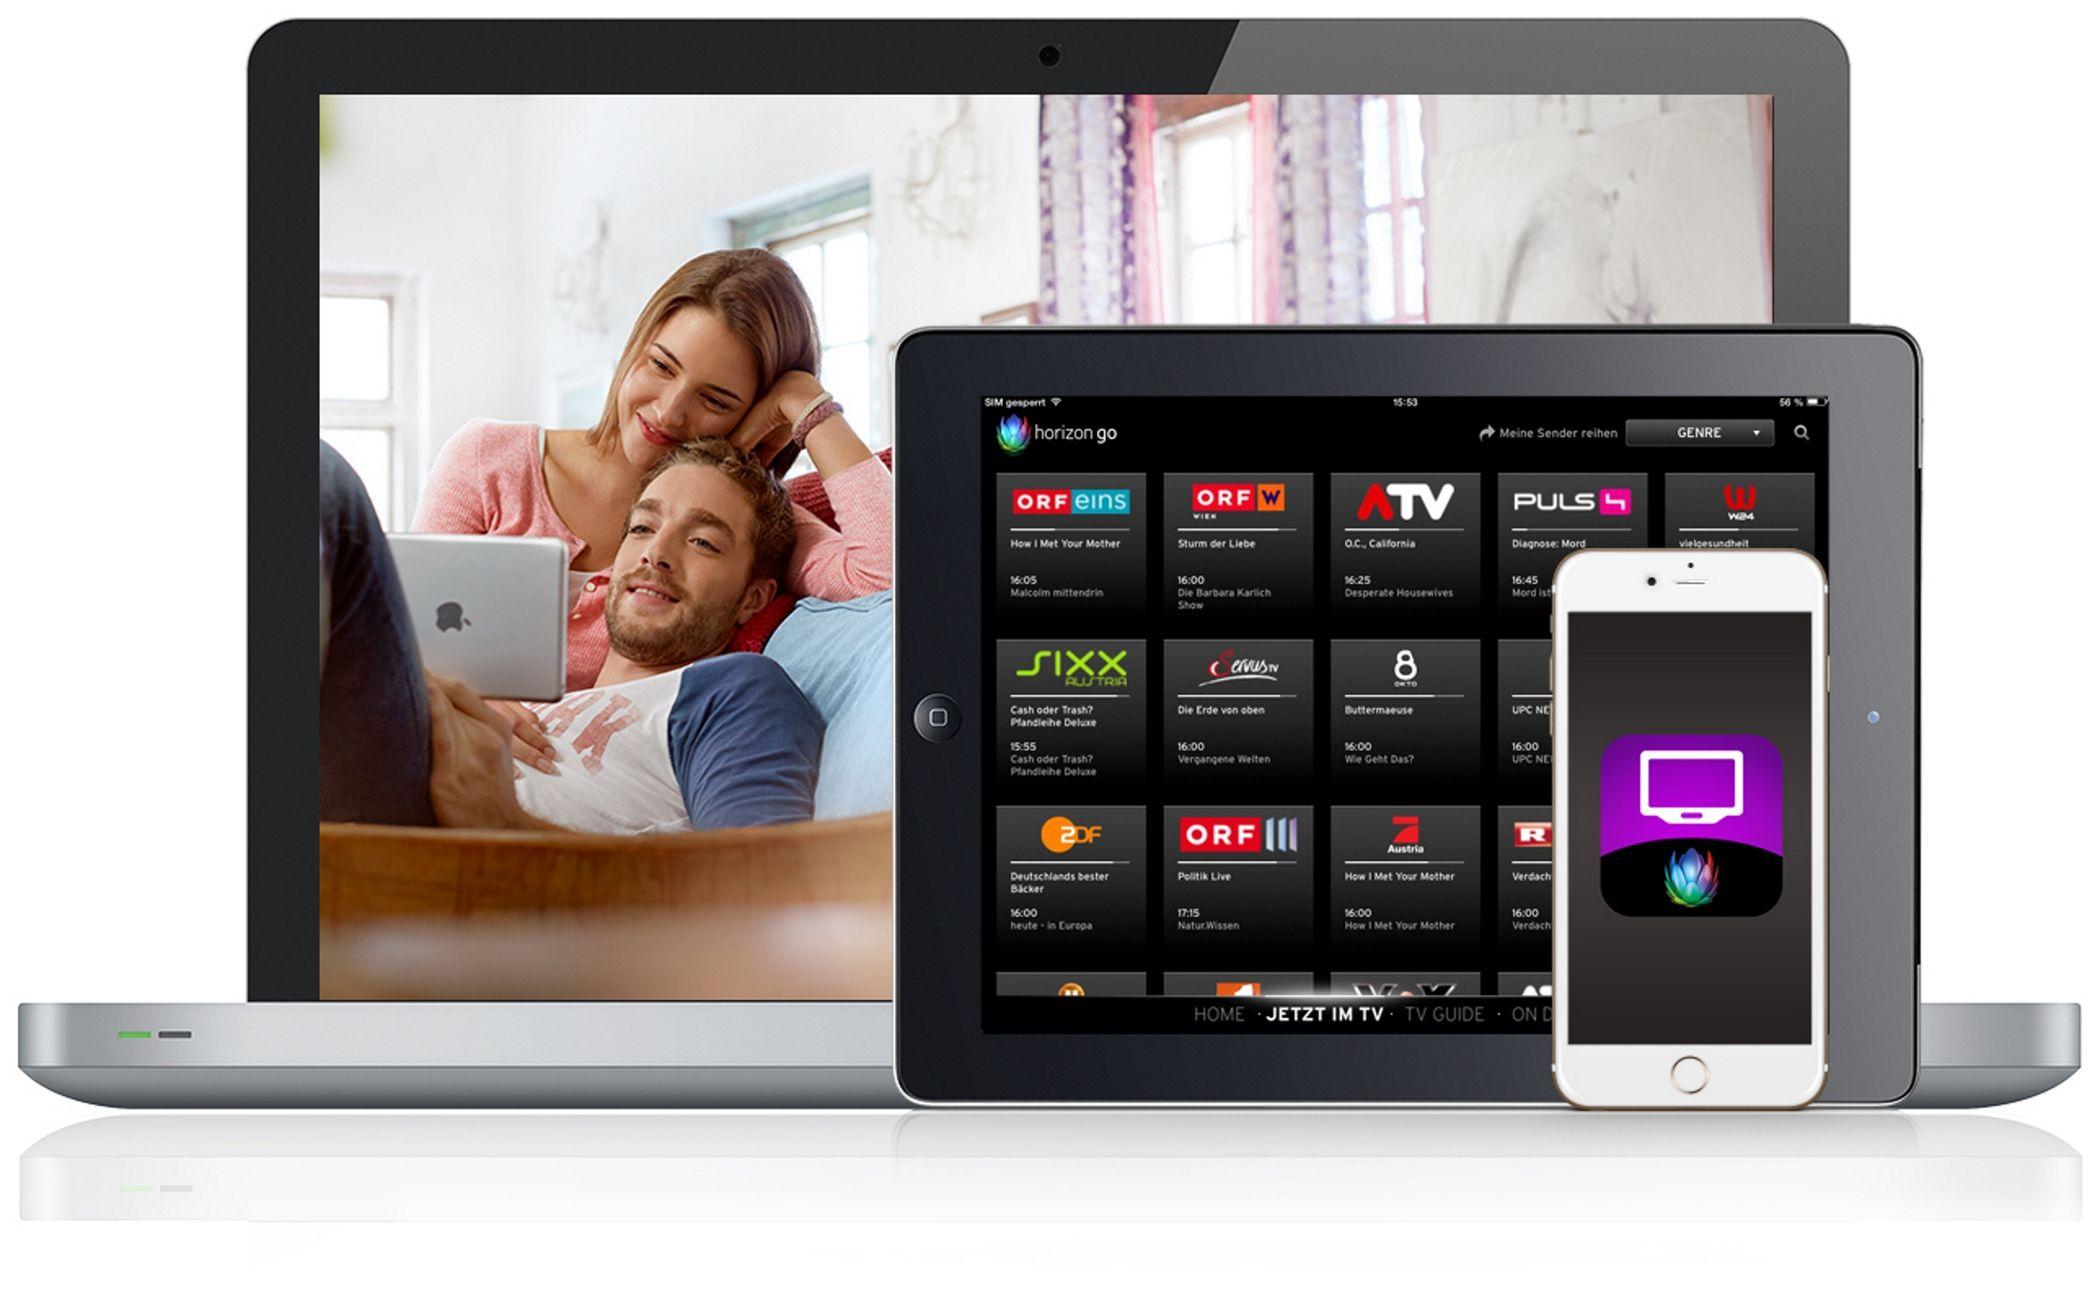 Replay TV ook op Horizon Go app van Ziggo | Broadband TV ...